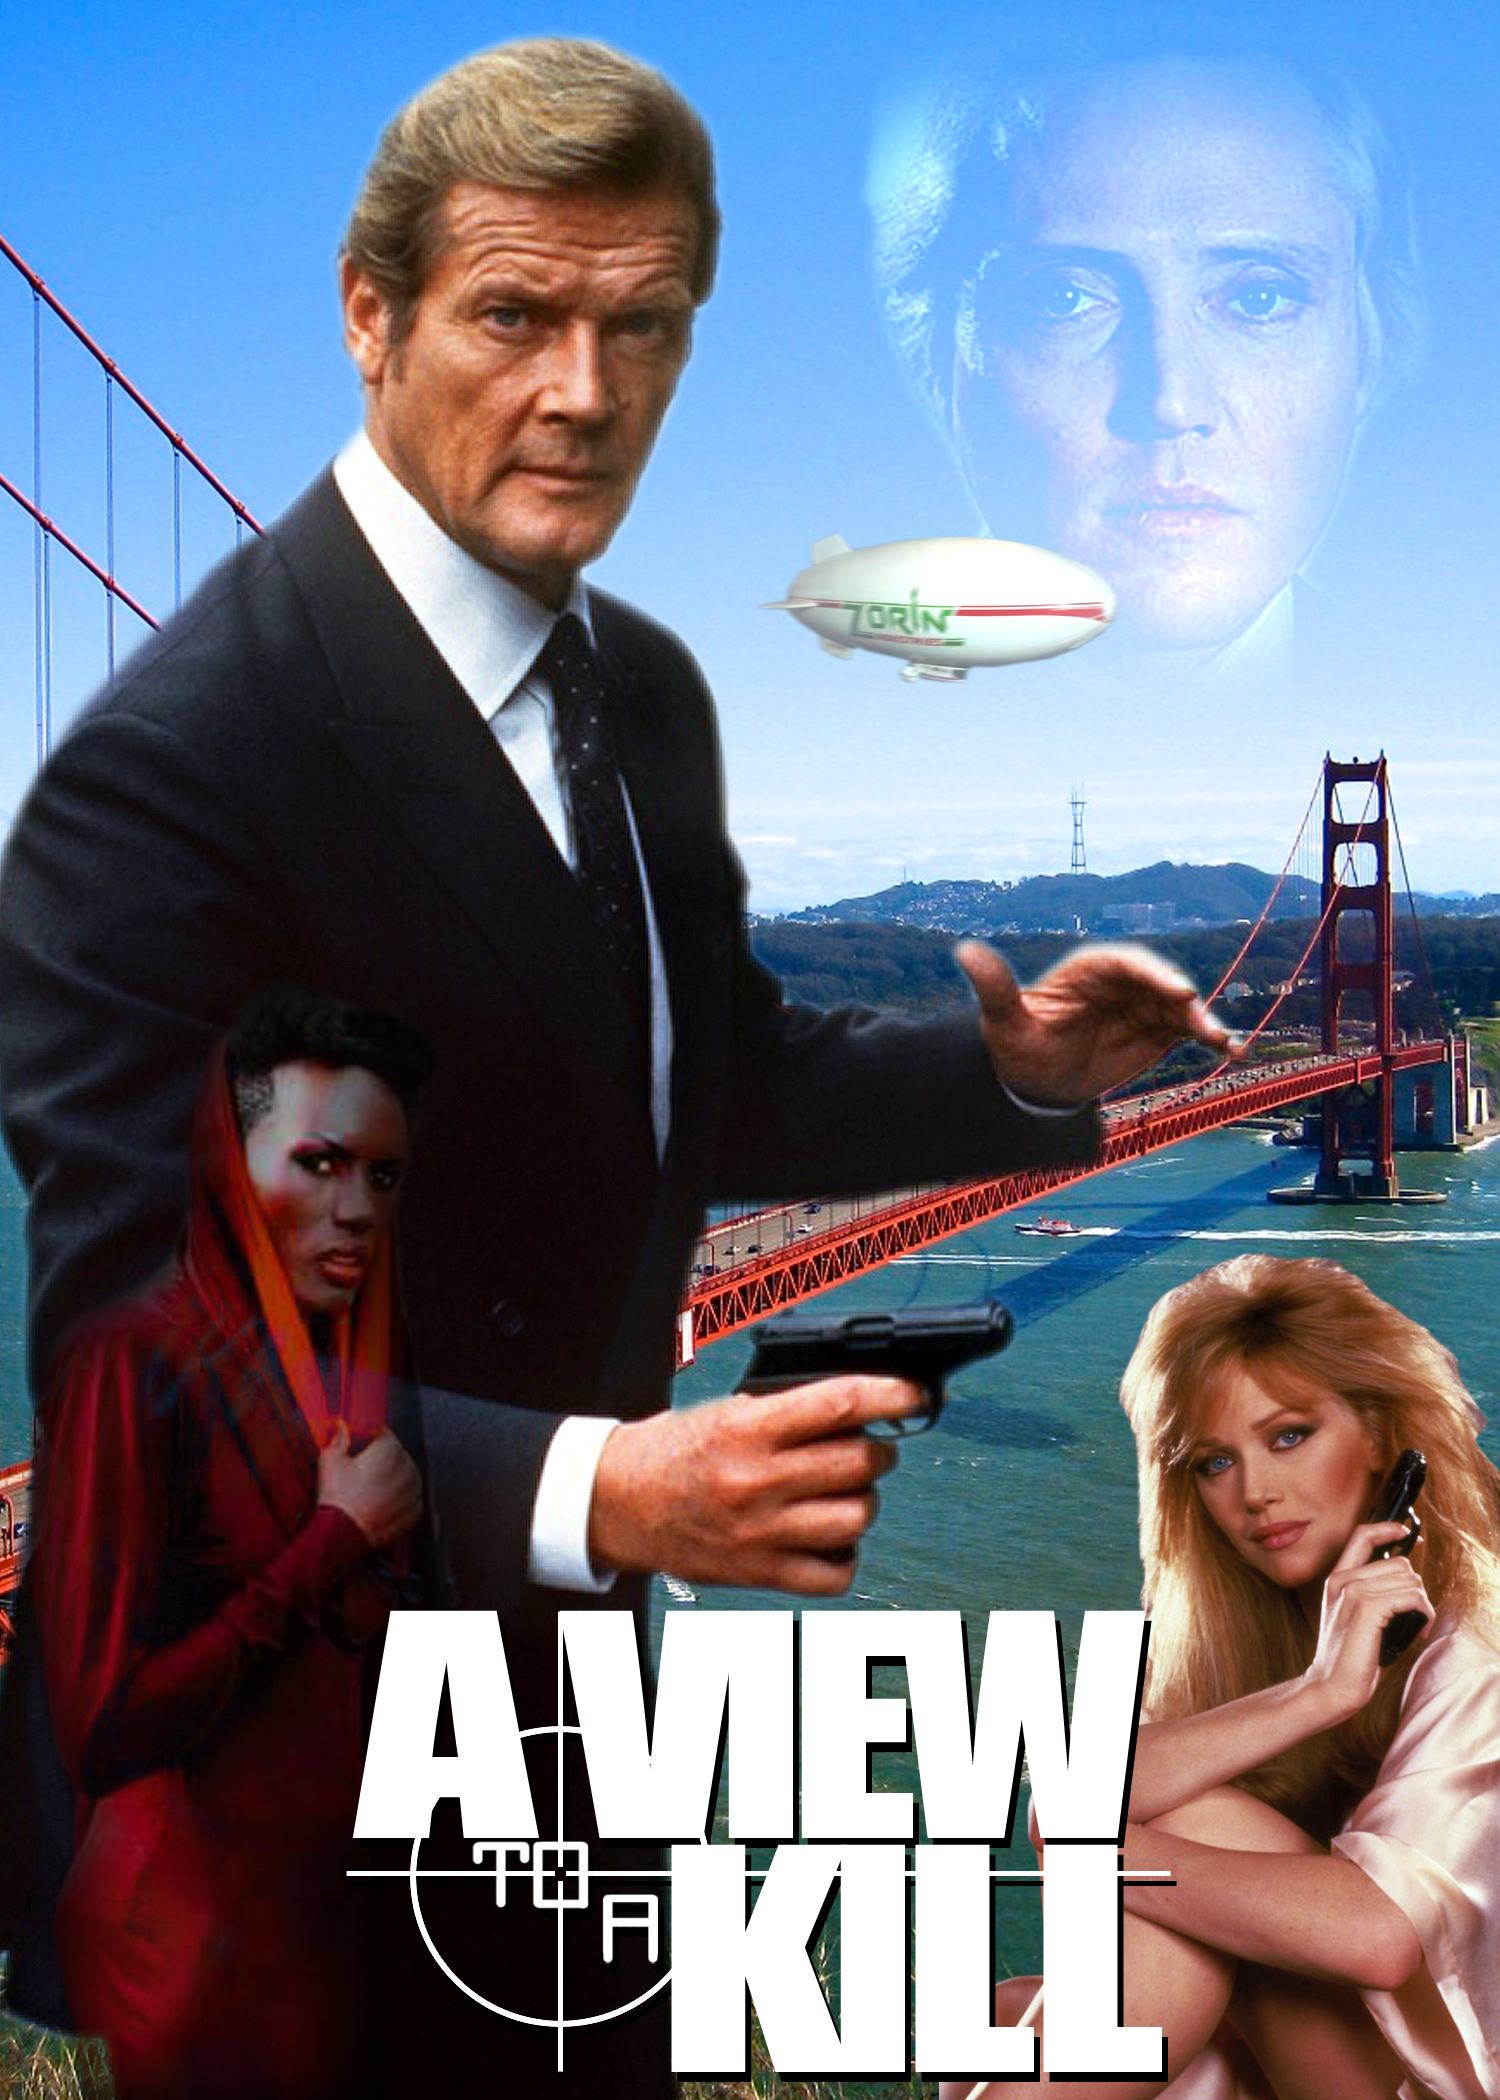 a_view_to_a_kill___007___poster_by_comandercool22-d65bys5.jpg